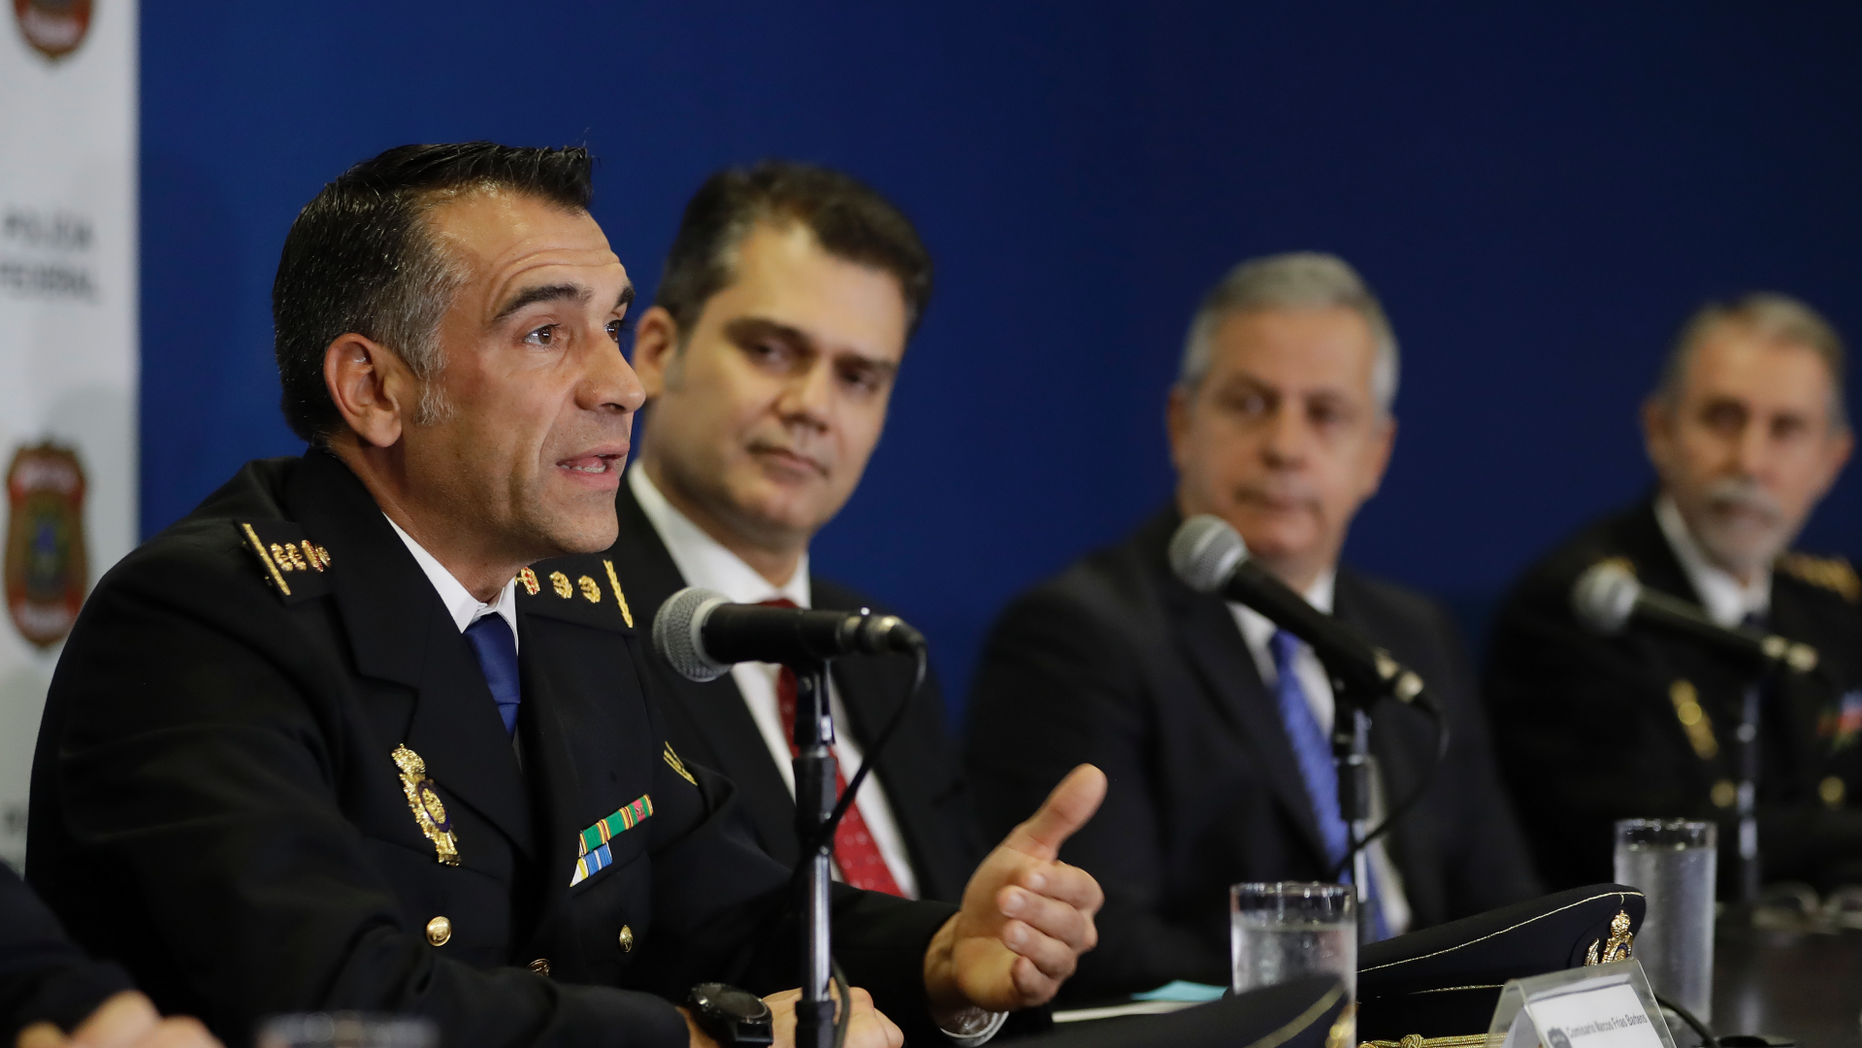 Spanish Police Commissioner Marcos Frias Barbens speaks during a news conference regarding the arrest of Carlos Garcia Julia, at Federal Police headquarters in Sao Paulo, Brazil, Friday, Dec. 7, 2018. Garcia Julia, convicted for the 1977 killing of five people in a Madrid trade union office, was arrested Thursday as he was walked down a street in a Sao Paulo middle-class neighborhood. (AP Photo/Andre Penner)